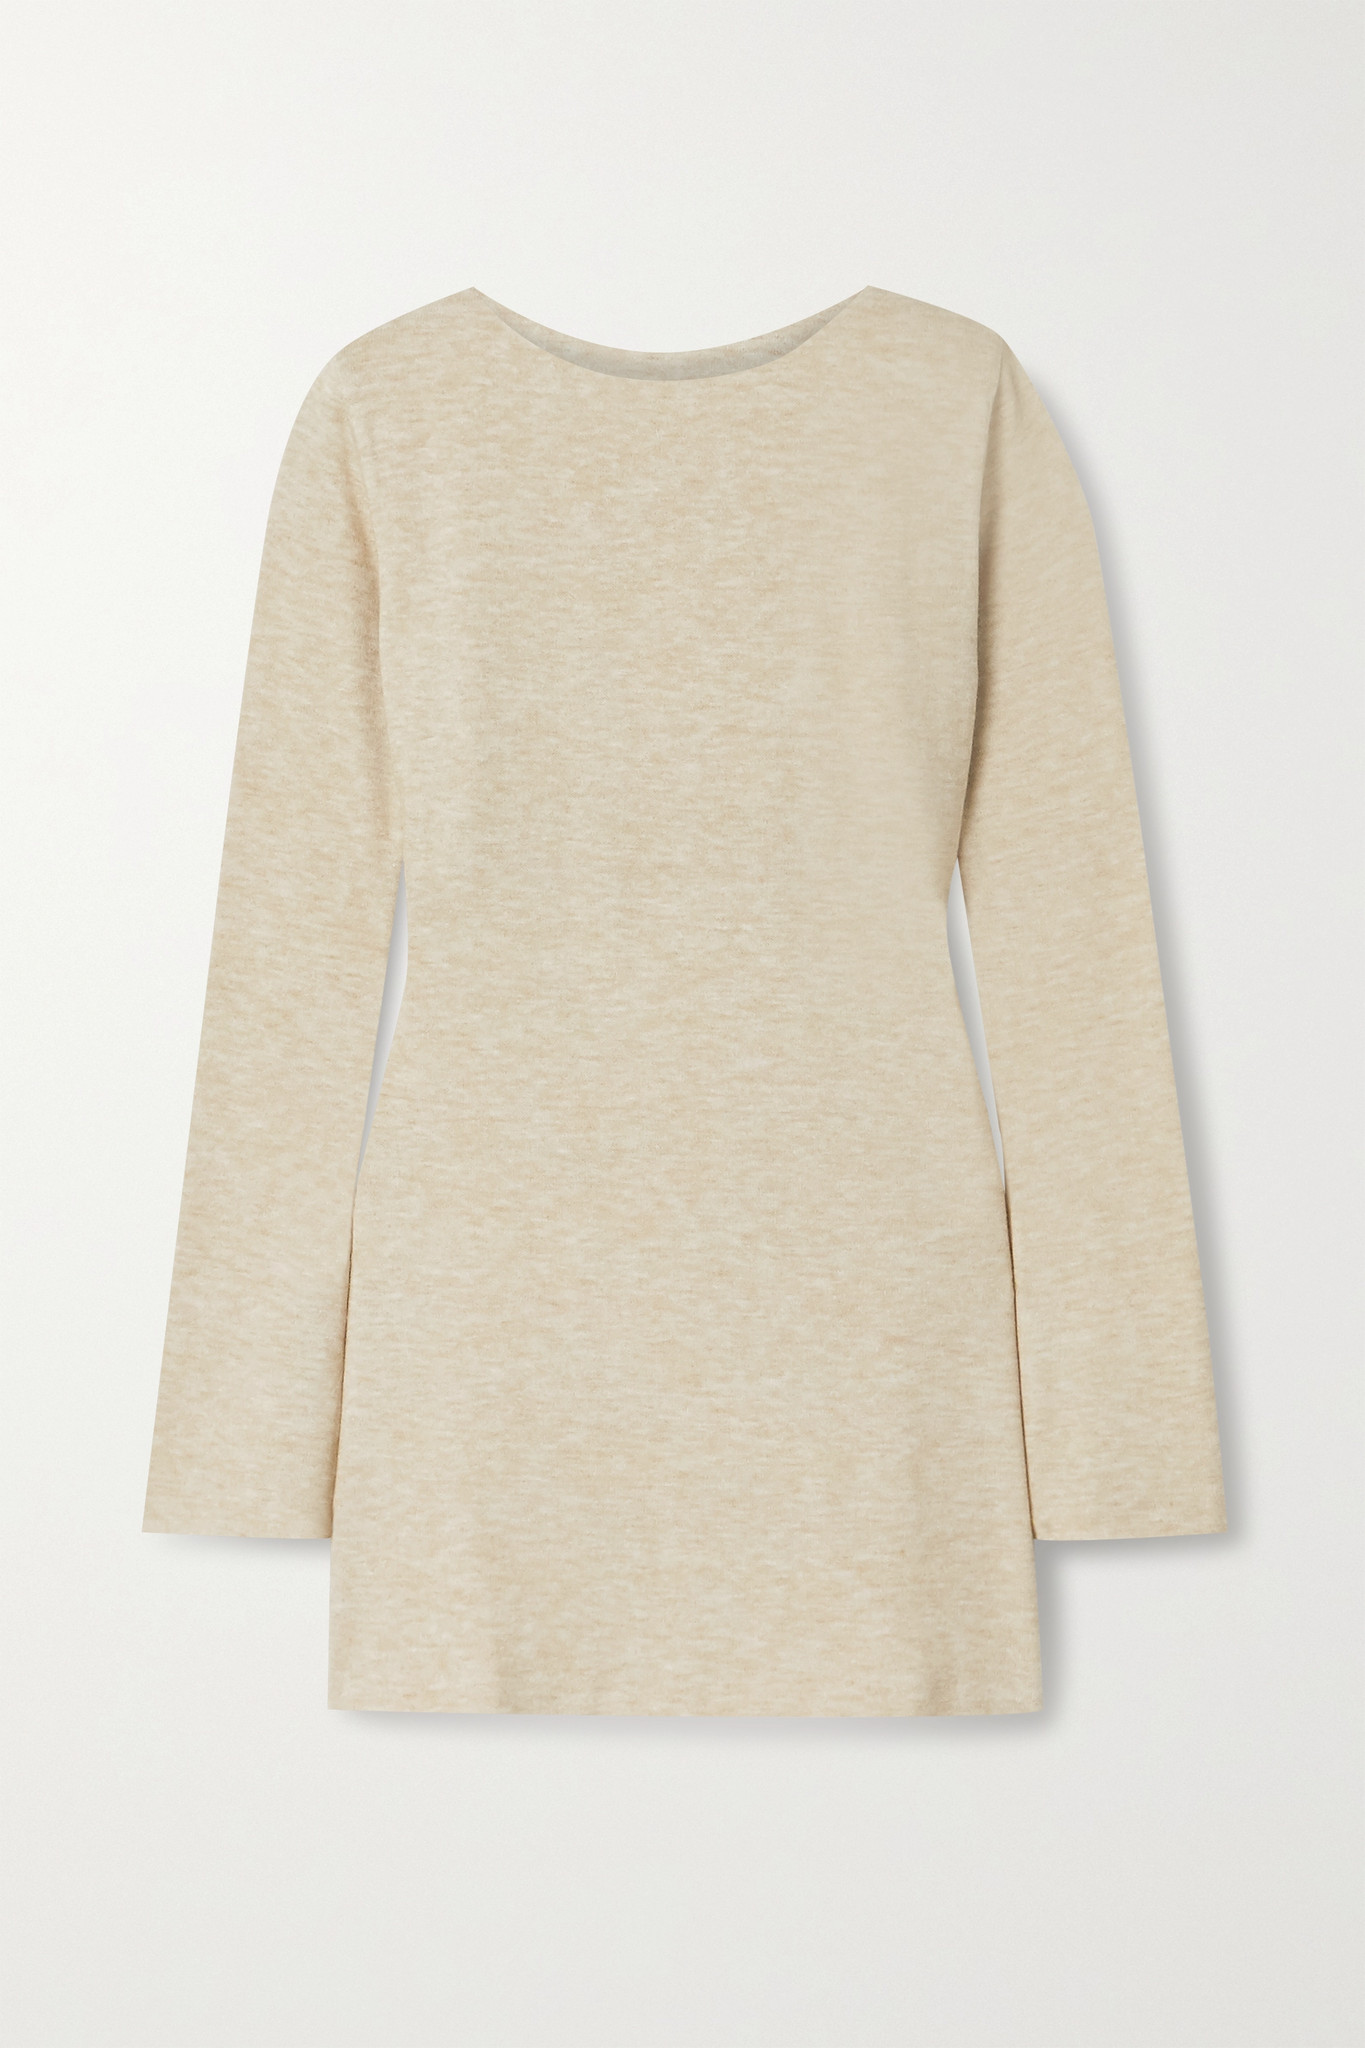 AAIZÉL - + Net Sustain Mélange Knitted Tunic - Neutrals - small